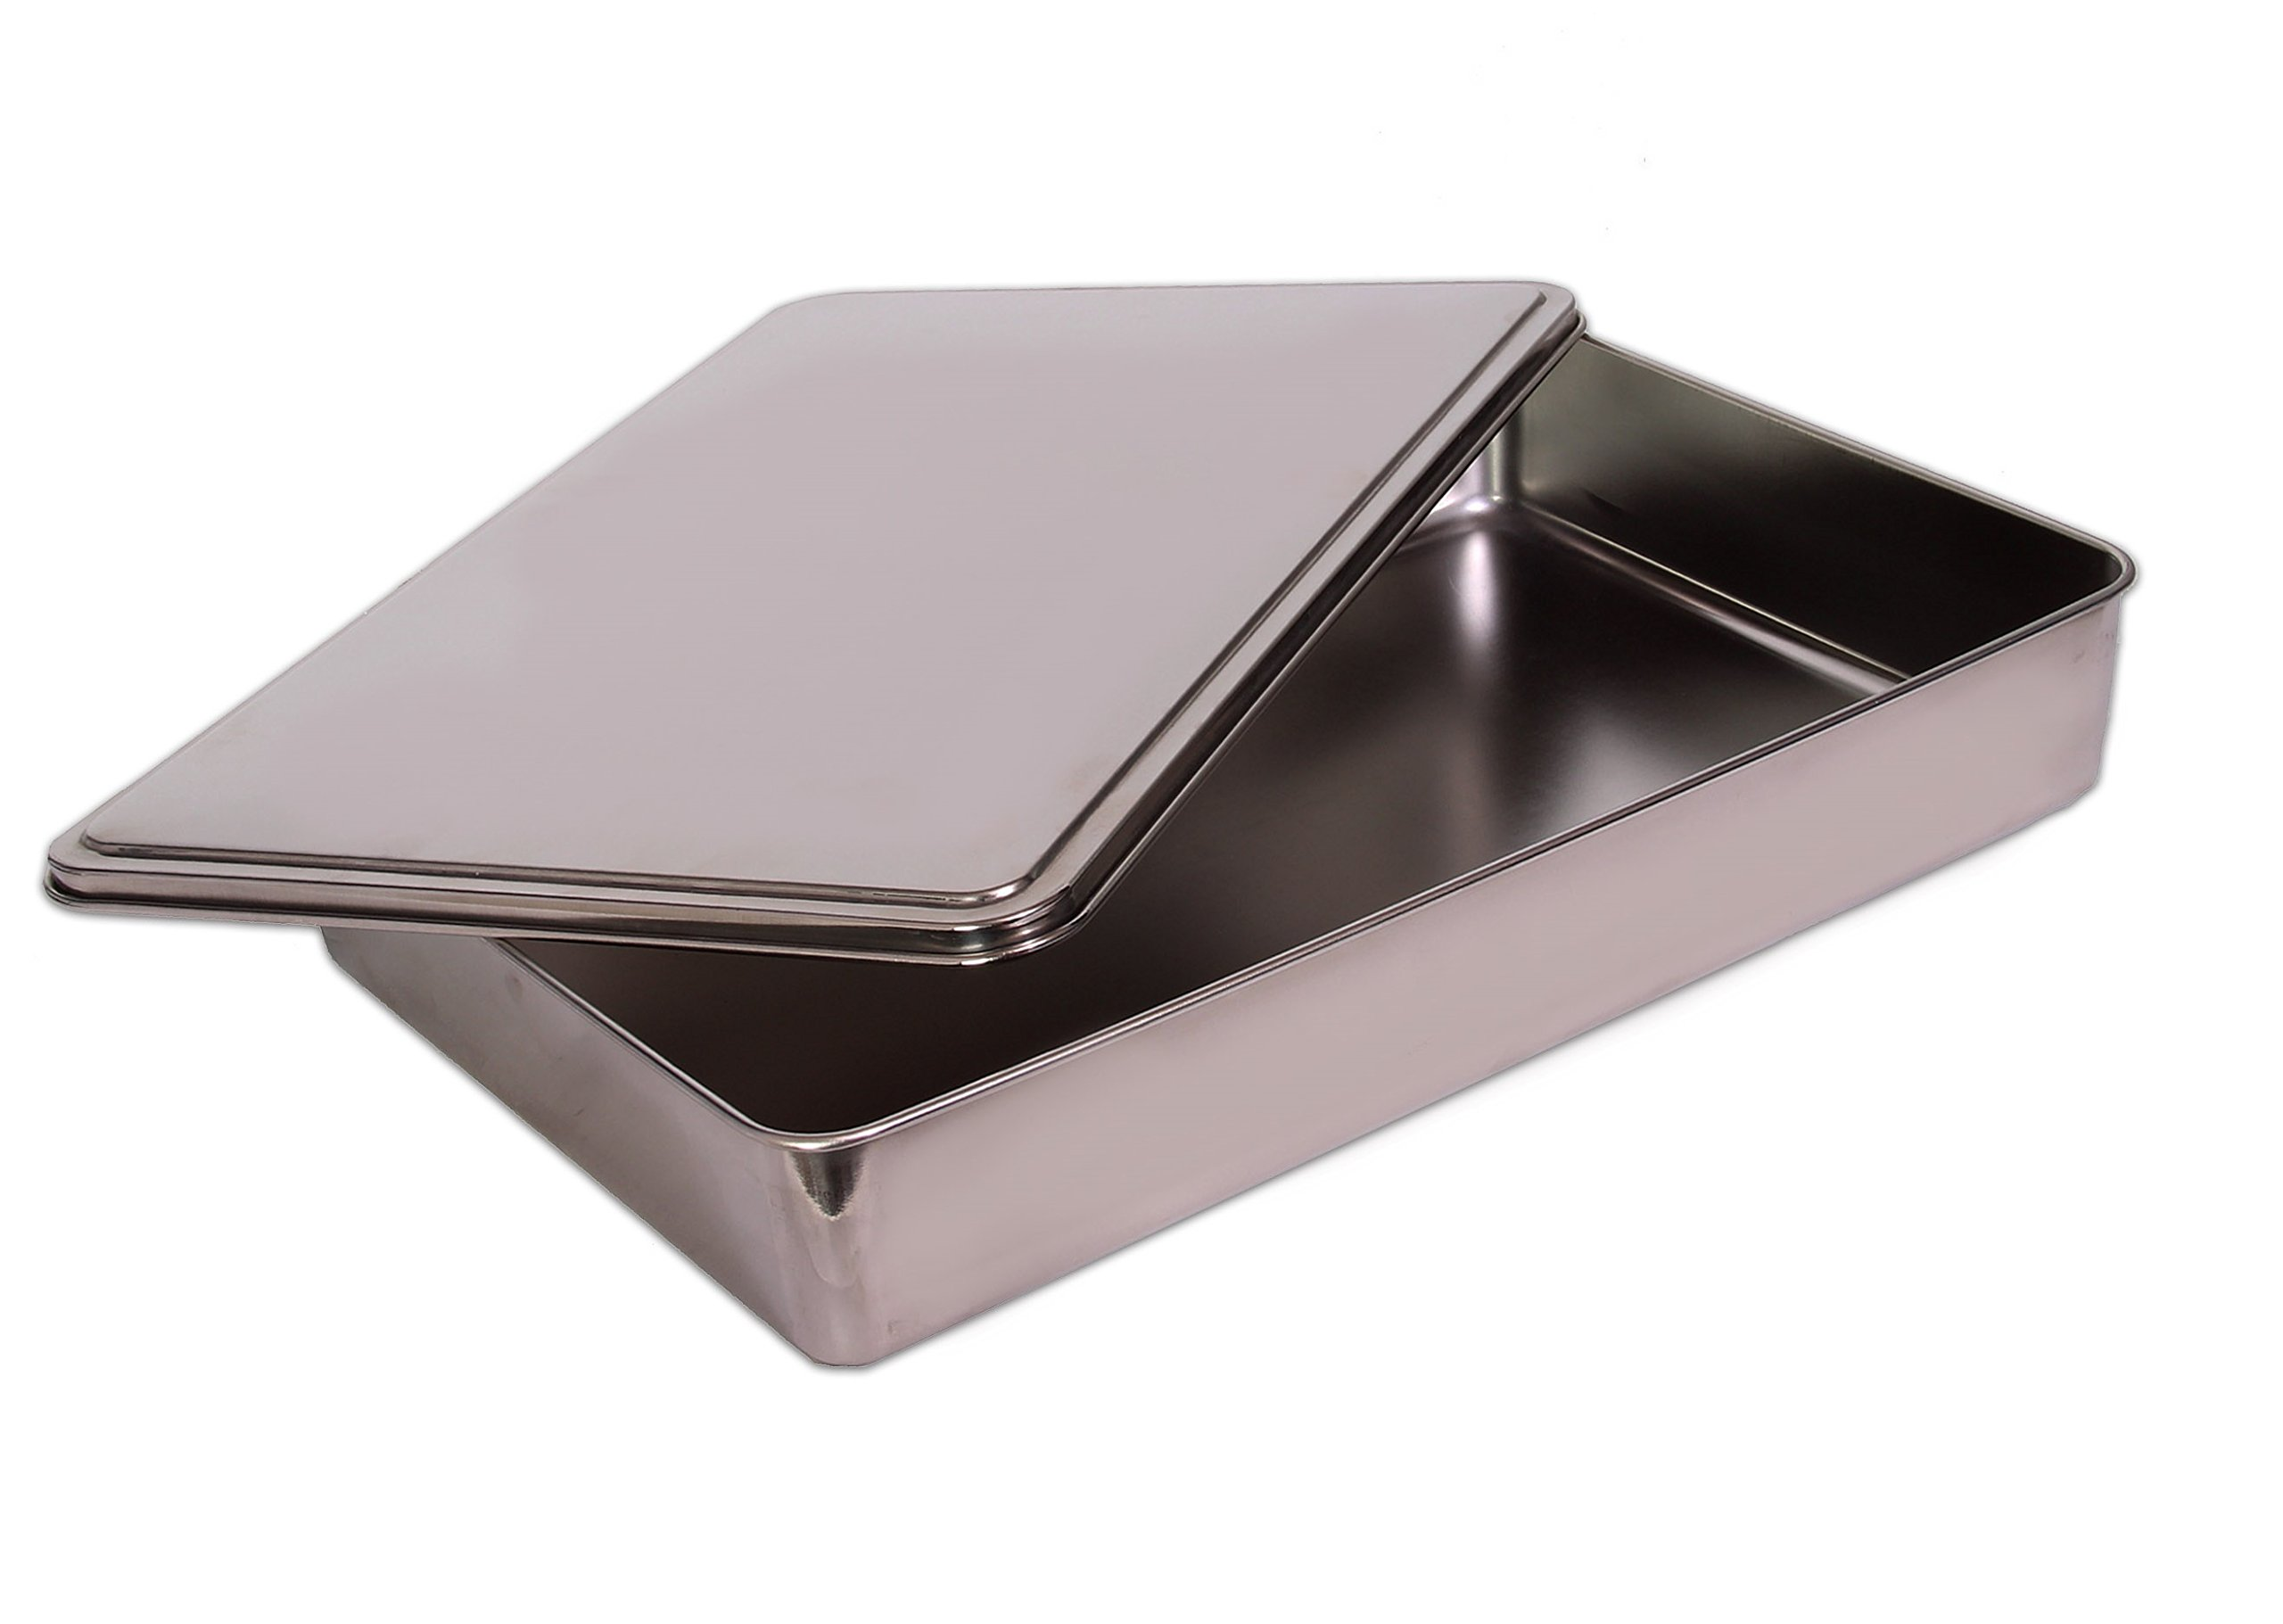 YBM HOME Stainless Steel Covered Cake Pan, Silver (Extra Large-2403) by YBM HOME (Image #2)